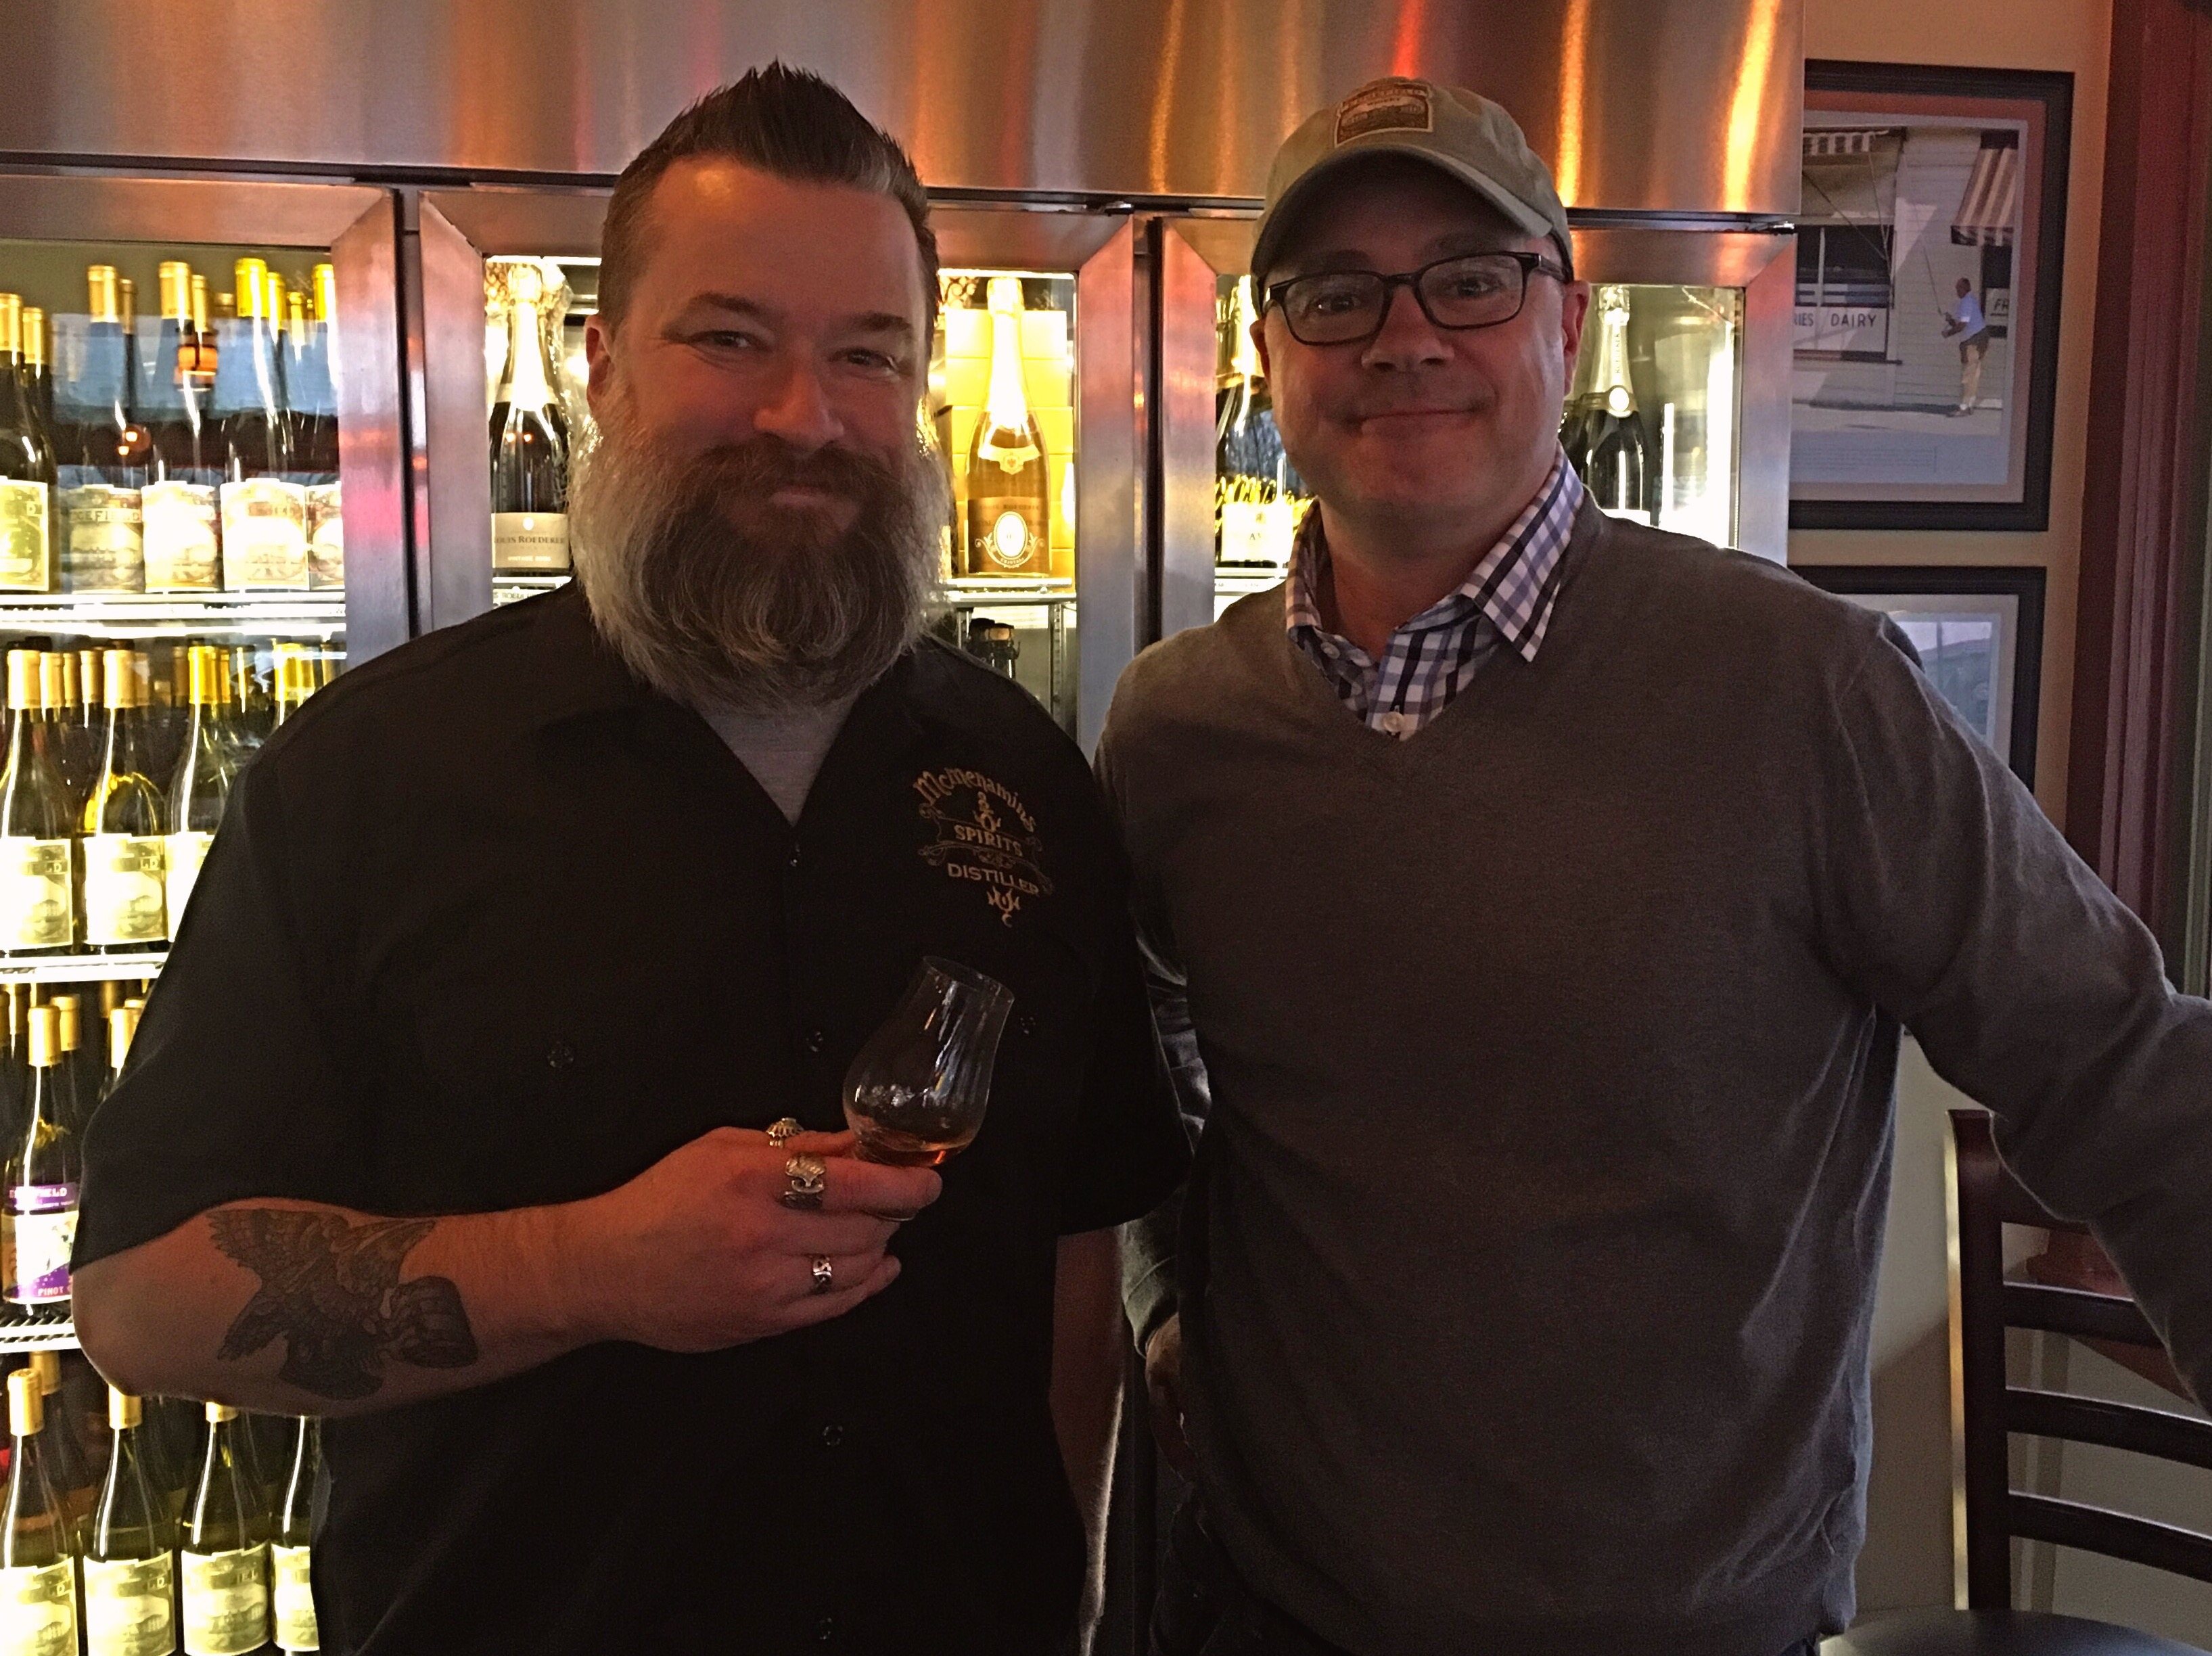 McMenamins Distillers James Whelan and Clark McCool at 23rd Avenue Bottle Shop.